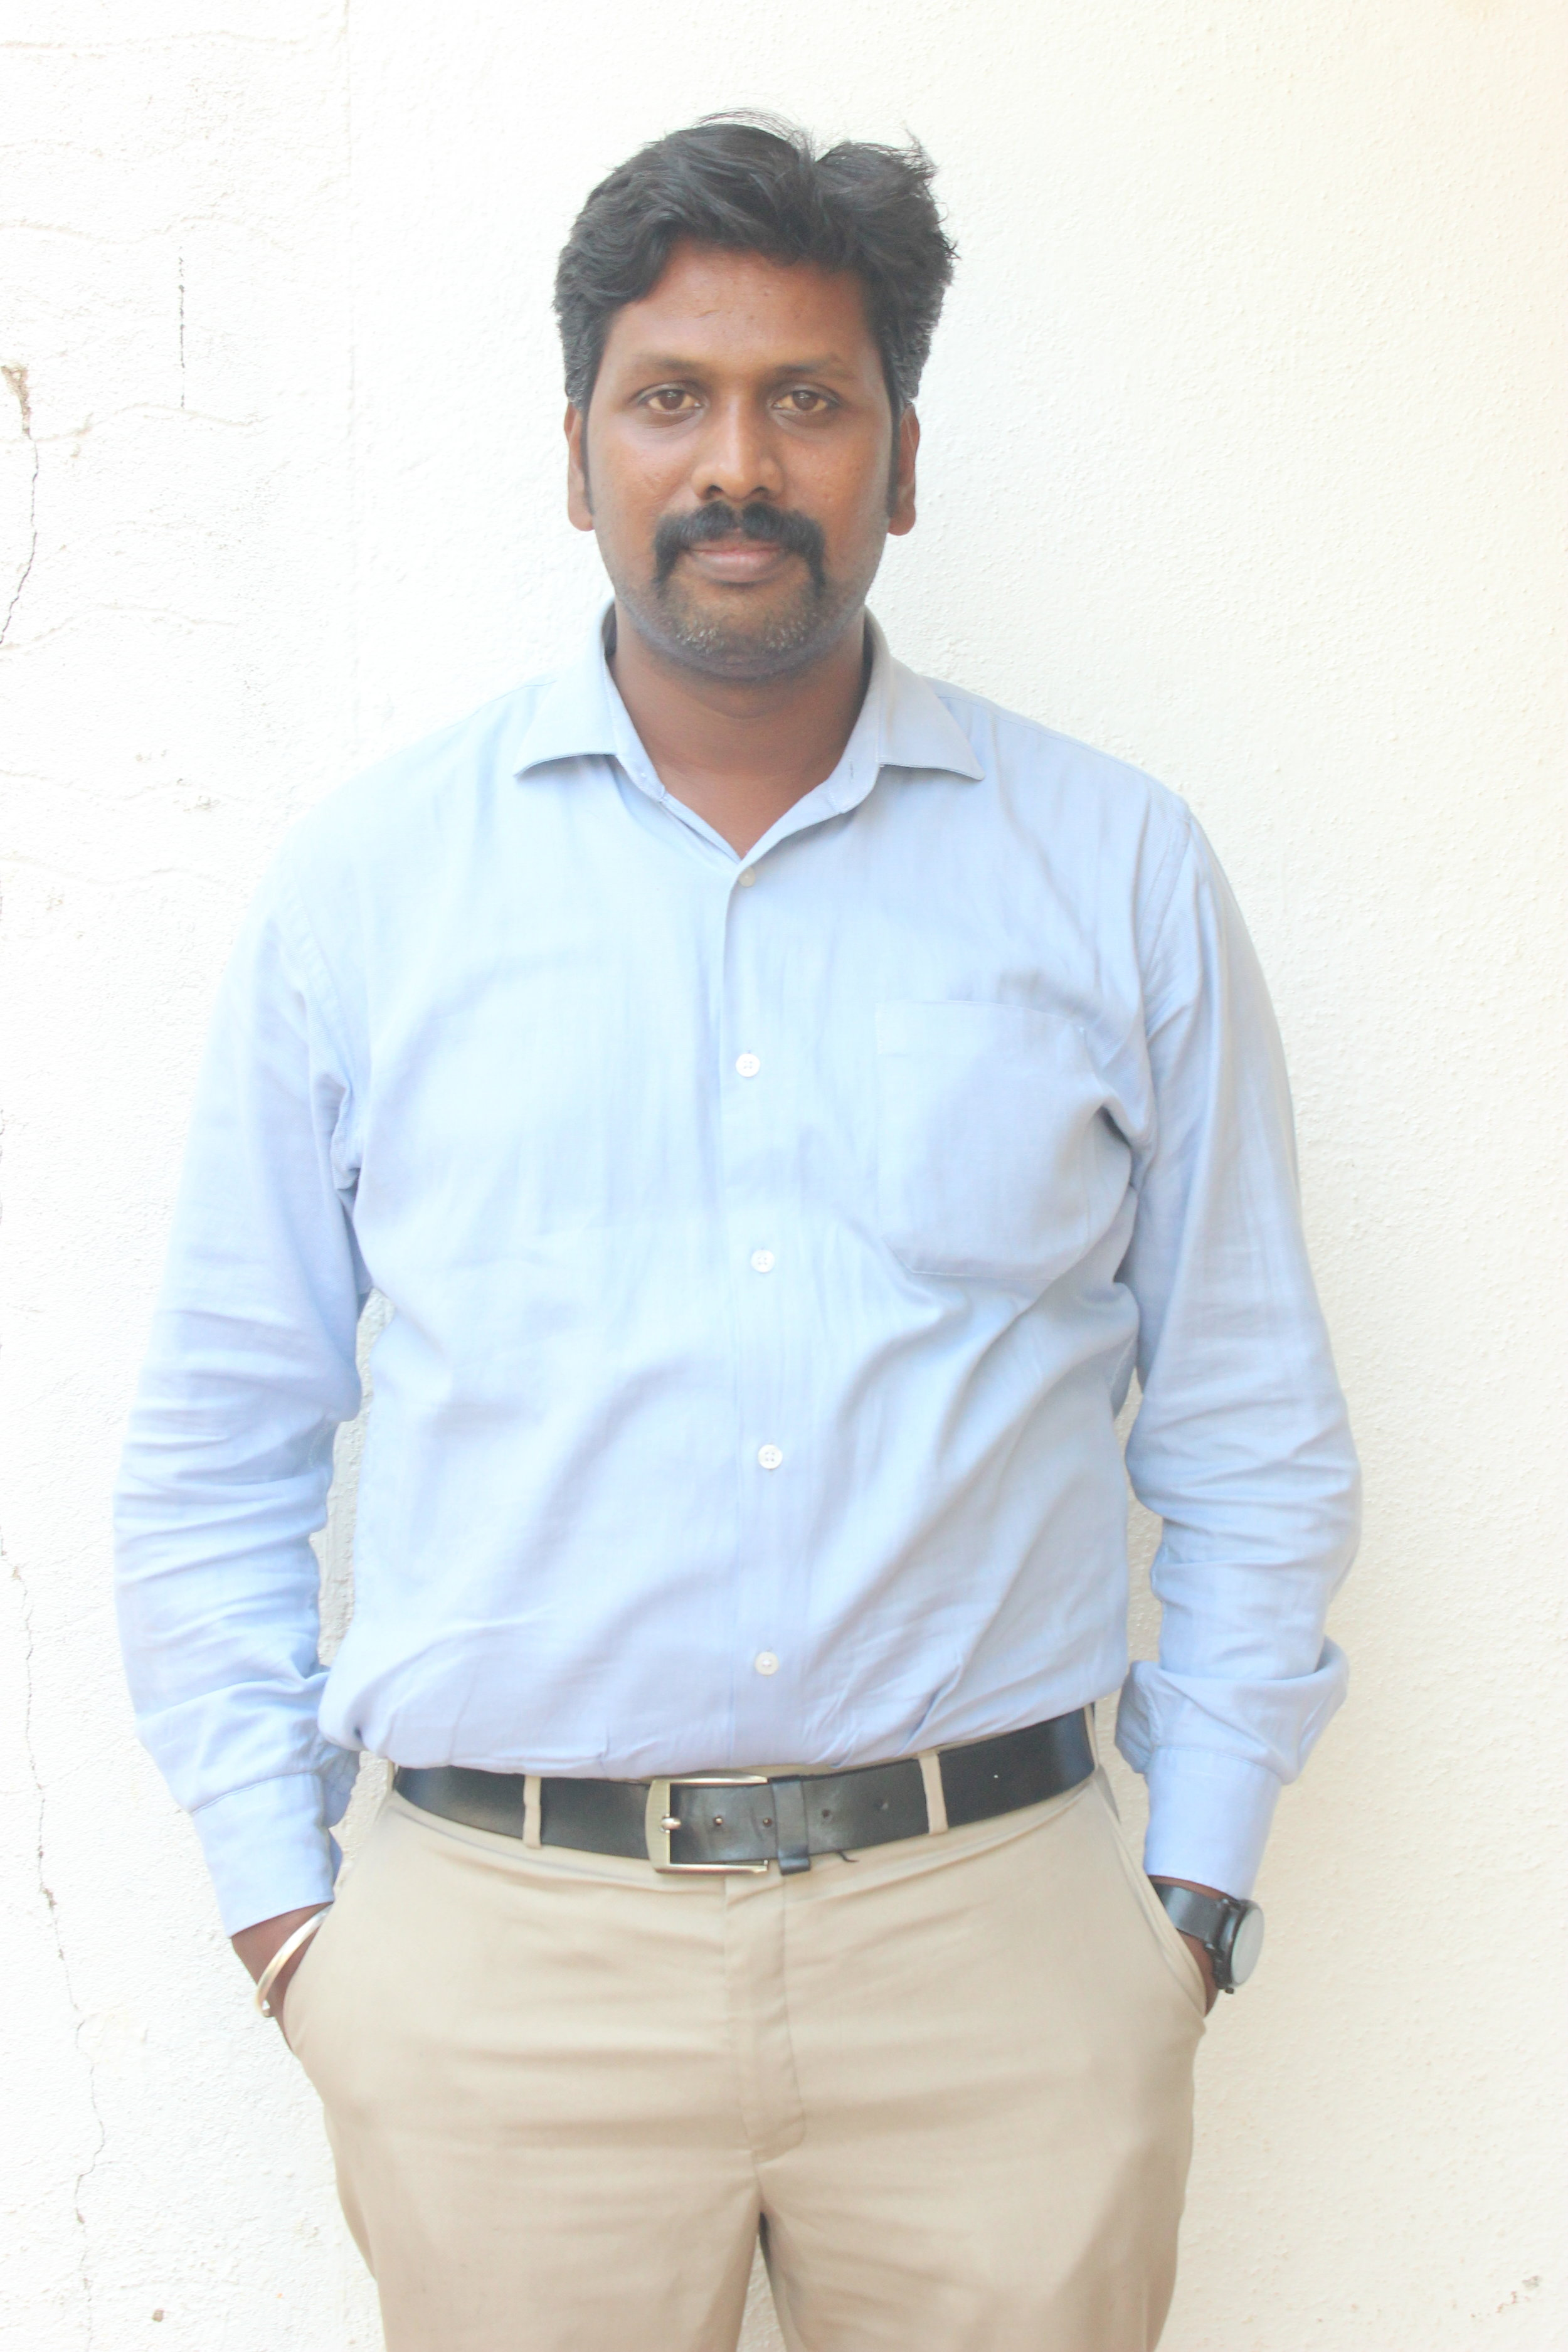 Mr. M.S.siranjeevi, B.Tech., MBA.,